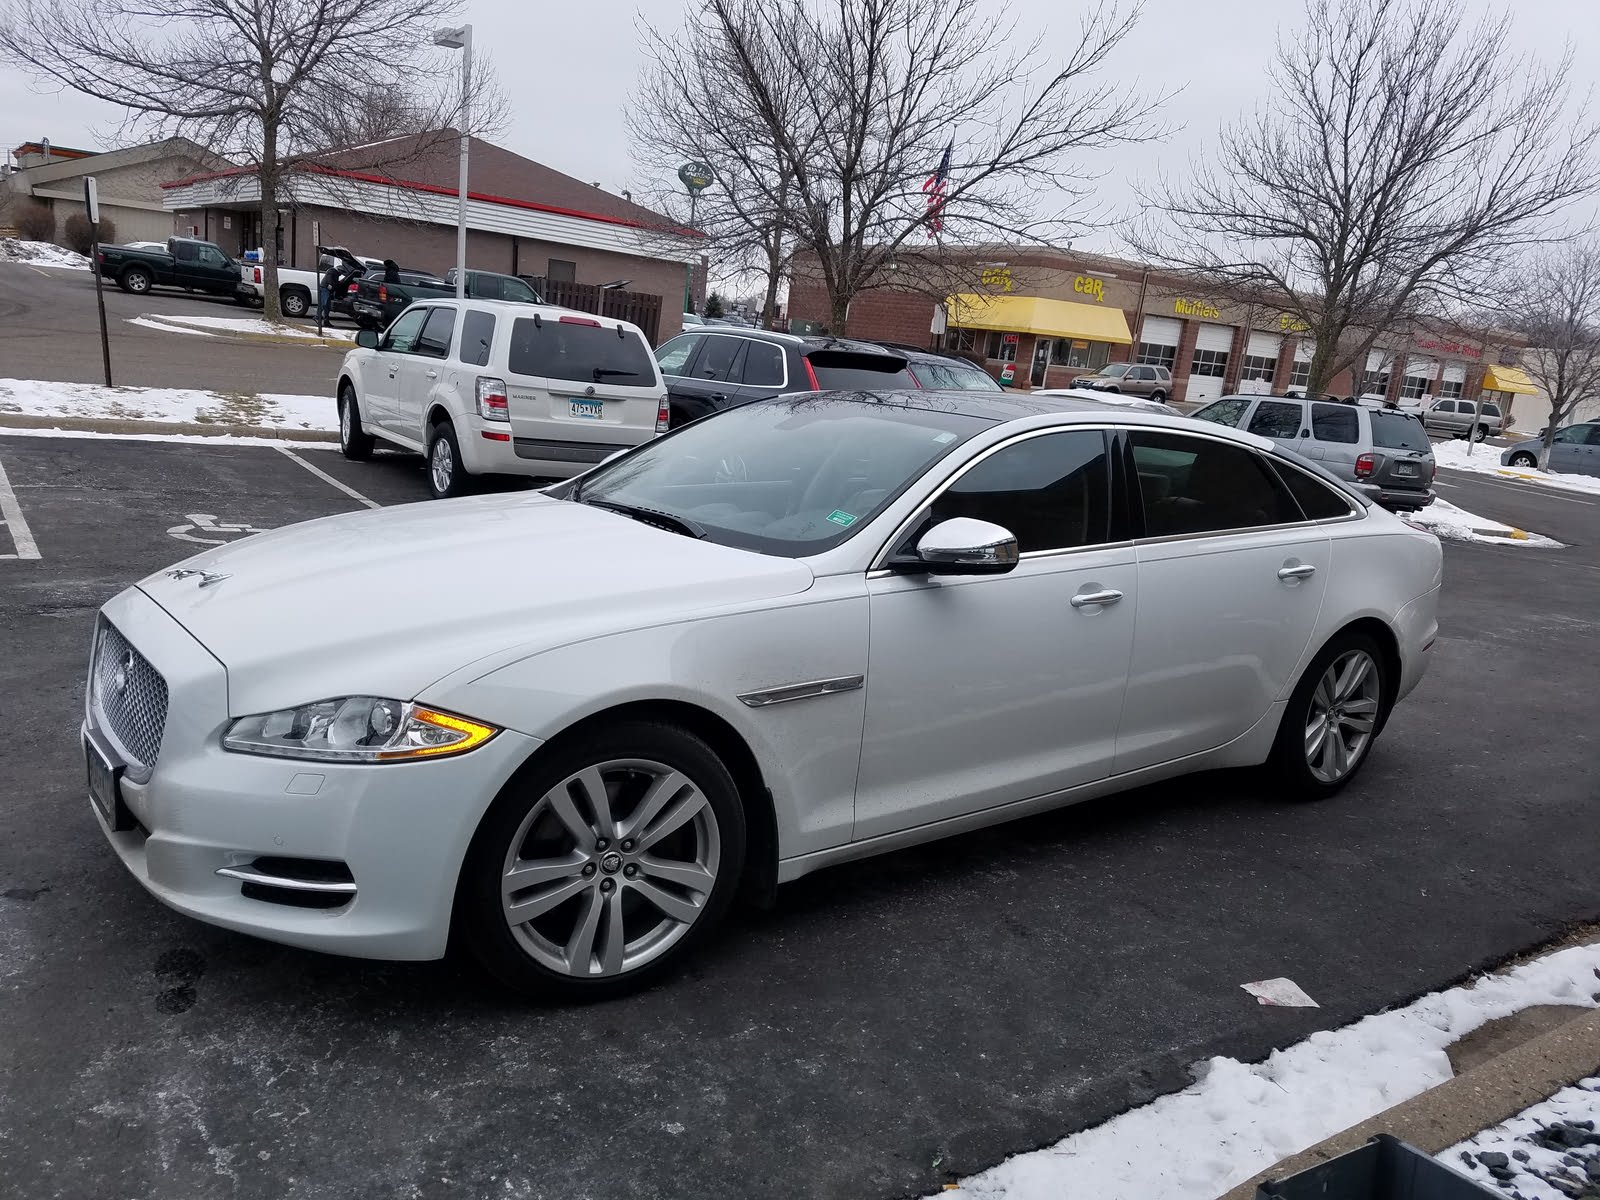 2013 Jaguar XJ-Series - Overview - CarGurus